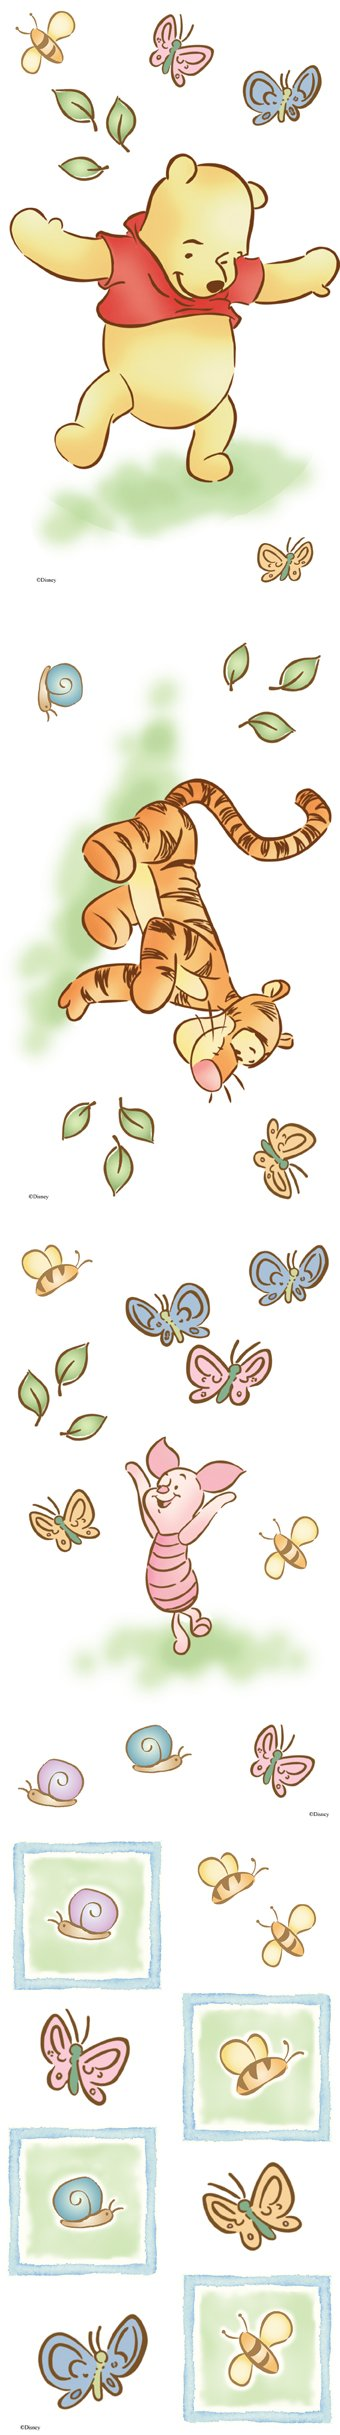 Lazy Daze Winnie the Pooh Room Appliques - Wall Sticker Outlet